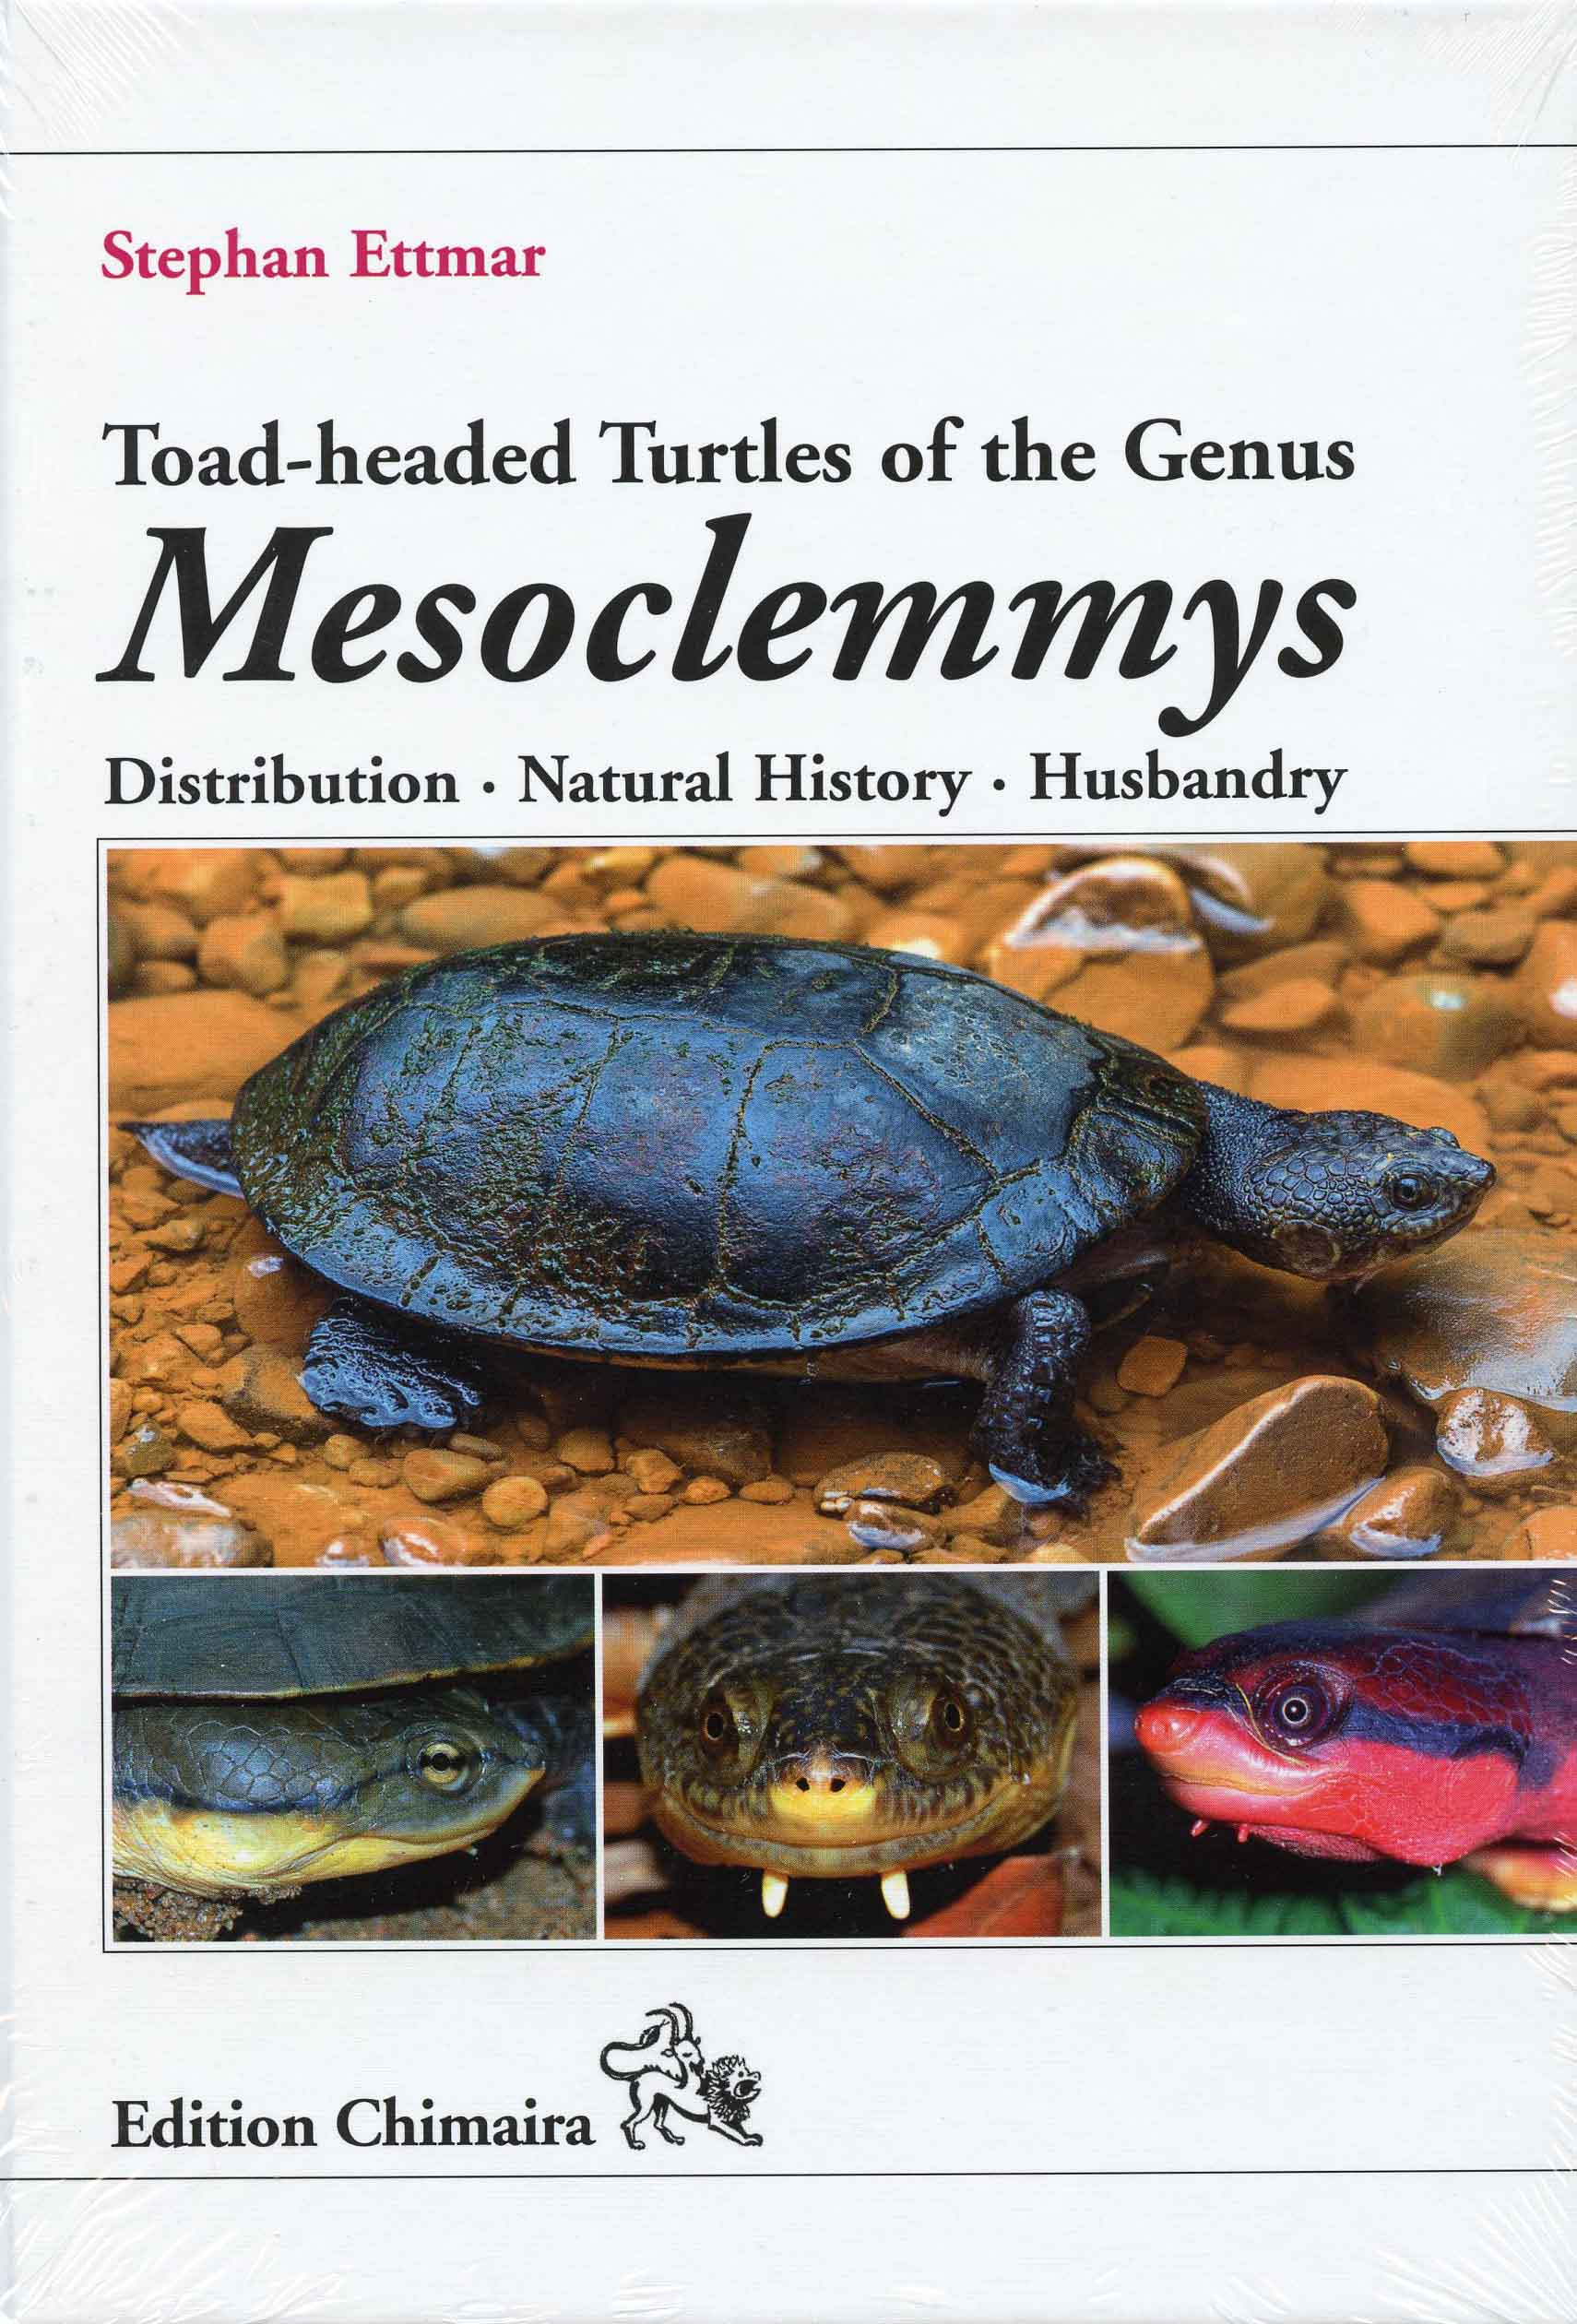 Image for Toad-headed Turtles of the Genus Mesoclemmys, Distribution, Natural History, Husbandry,